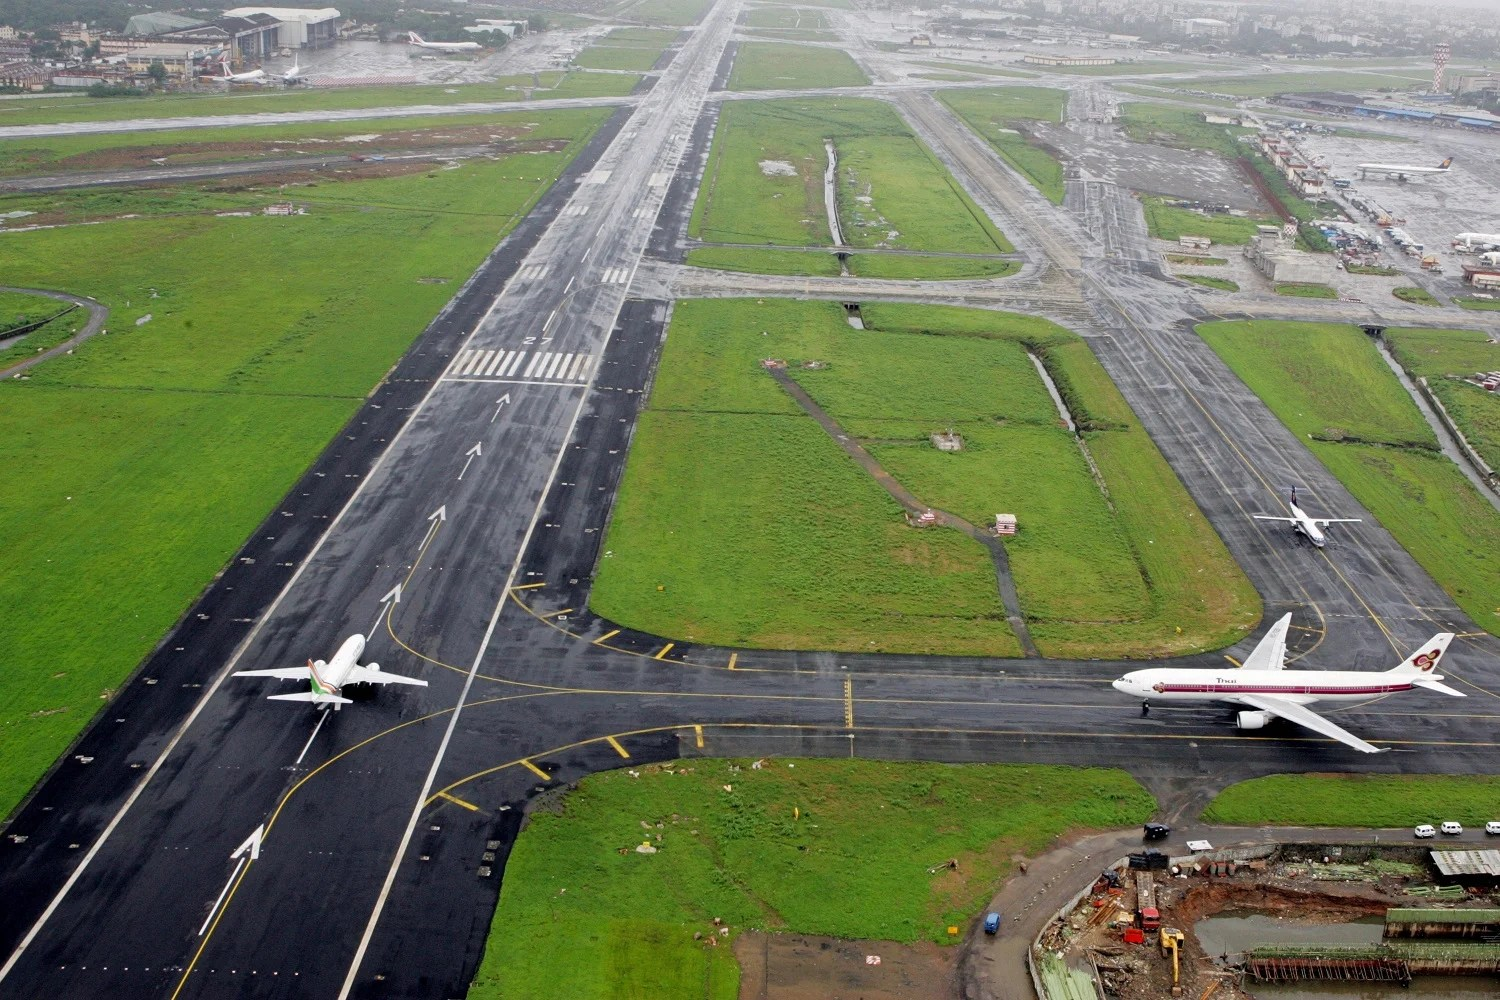 Airport Breaks Own Record For Most Flights From One Runway